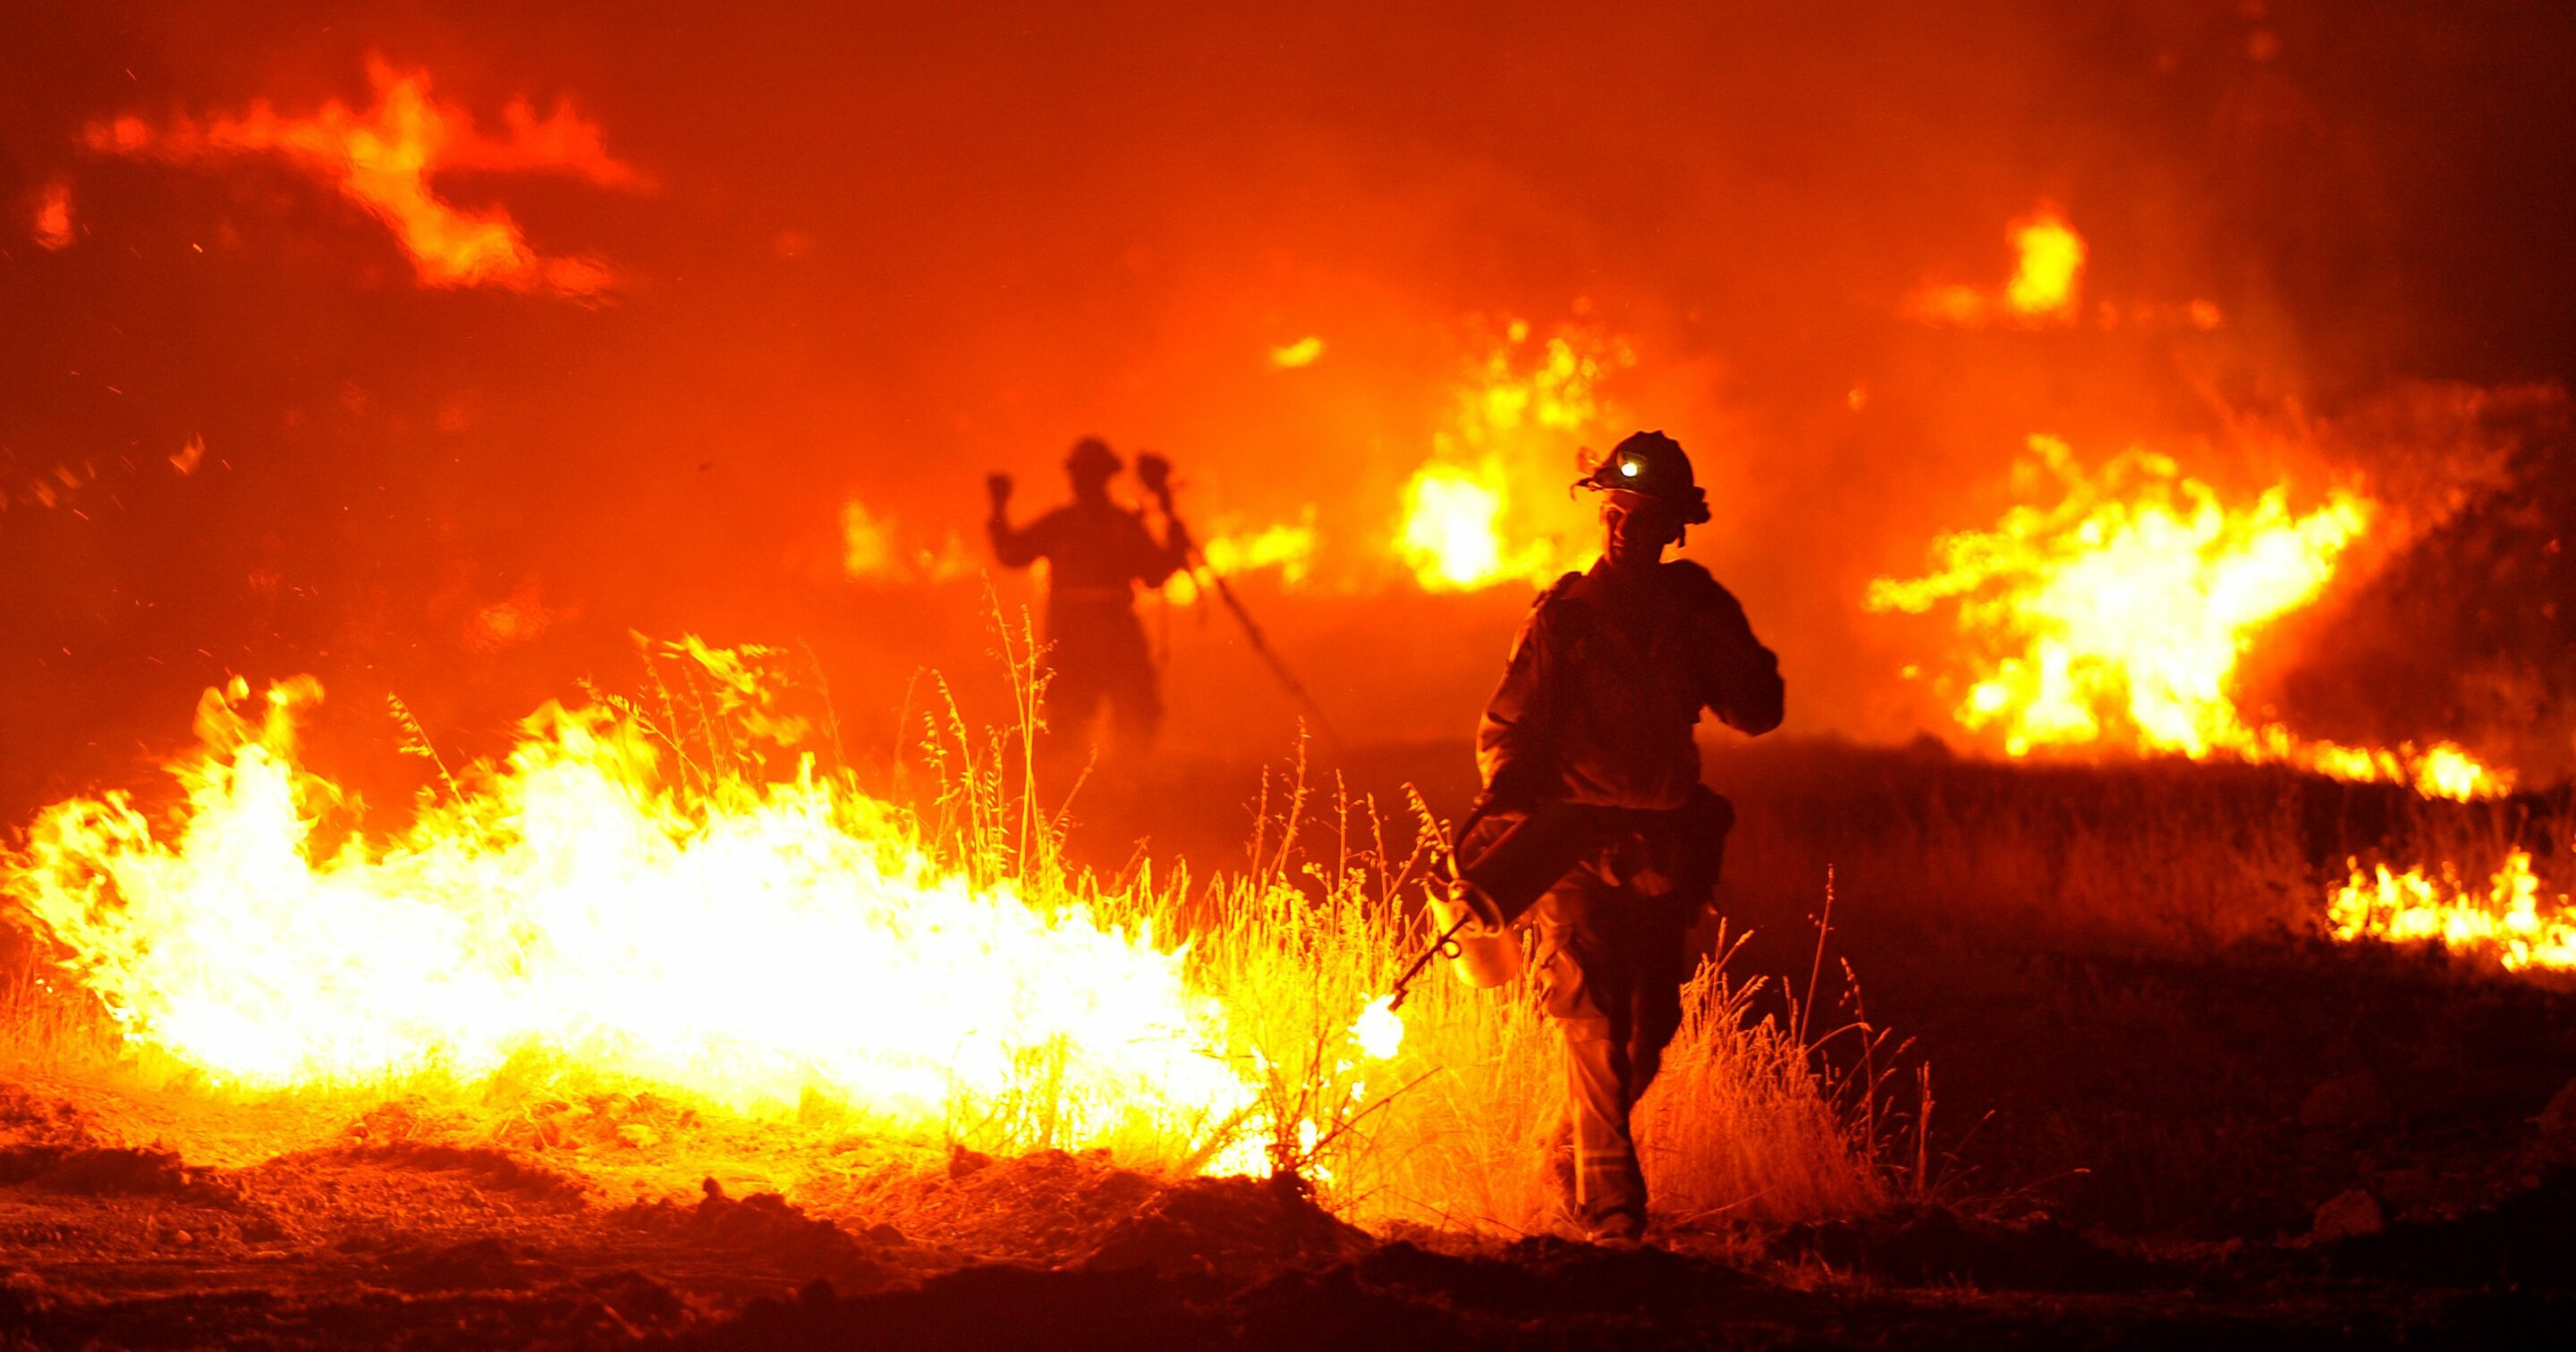 firefighters fighting a blazing fire in a field